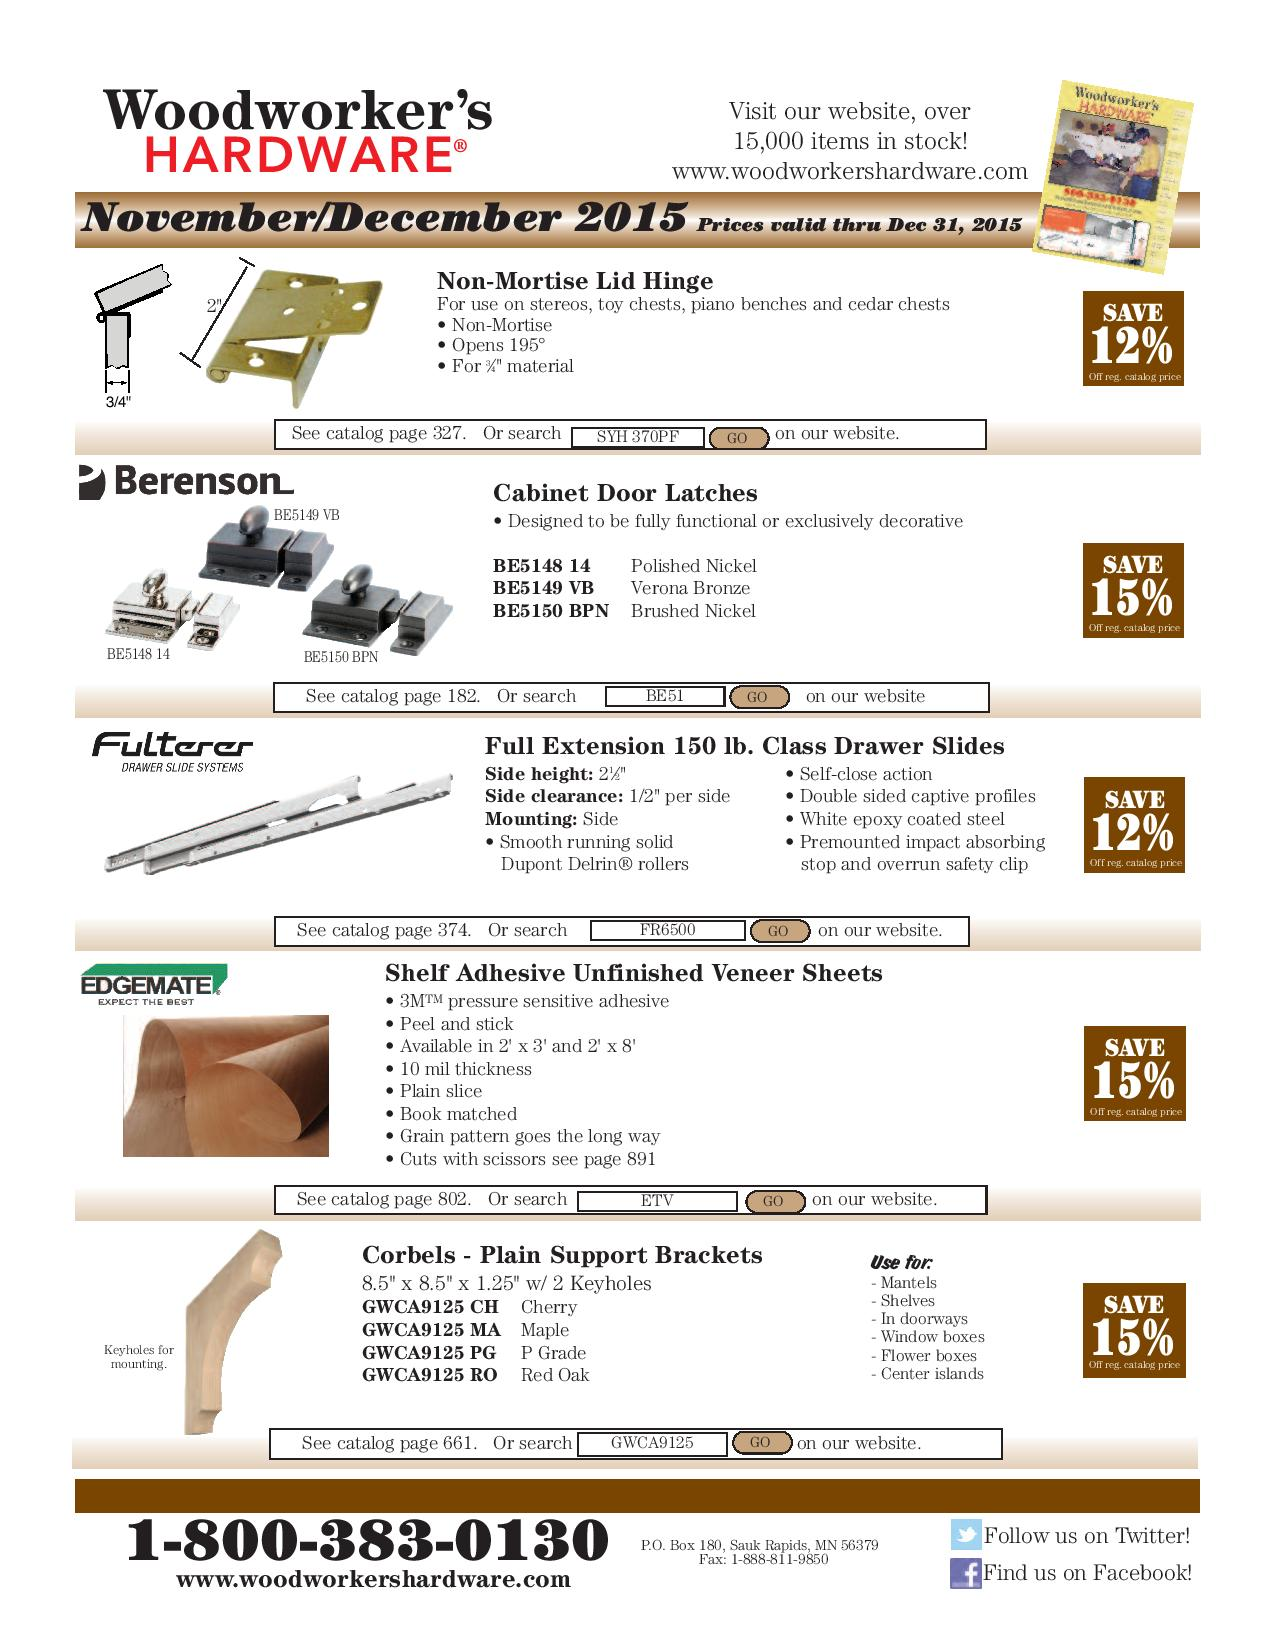 Midland hardware coupon